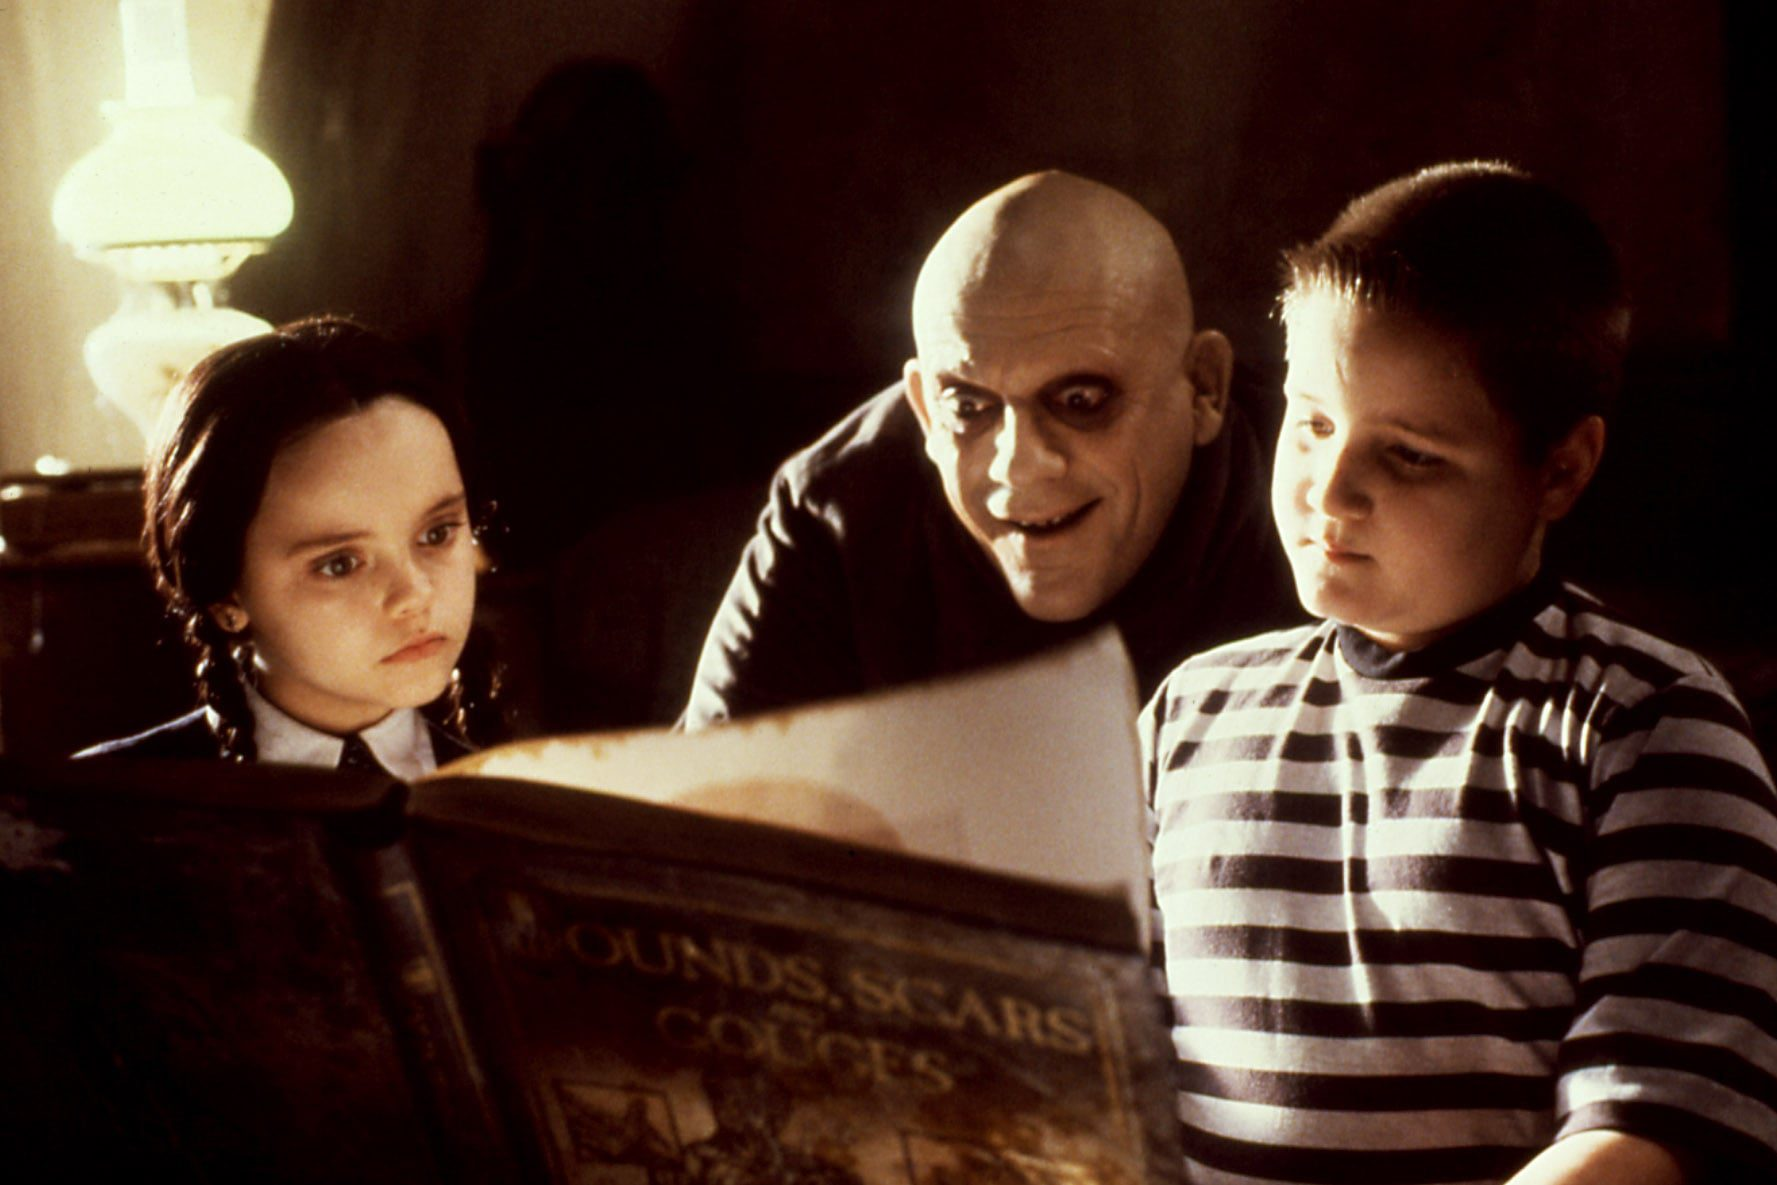 Release Date For The Addams Family's Wednesday